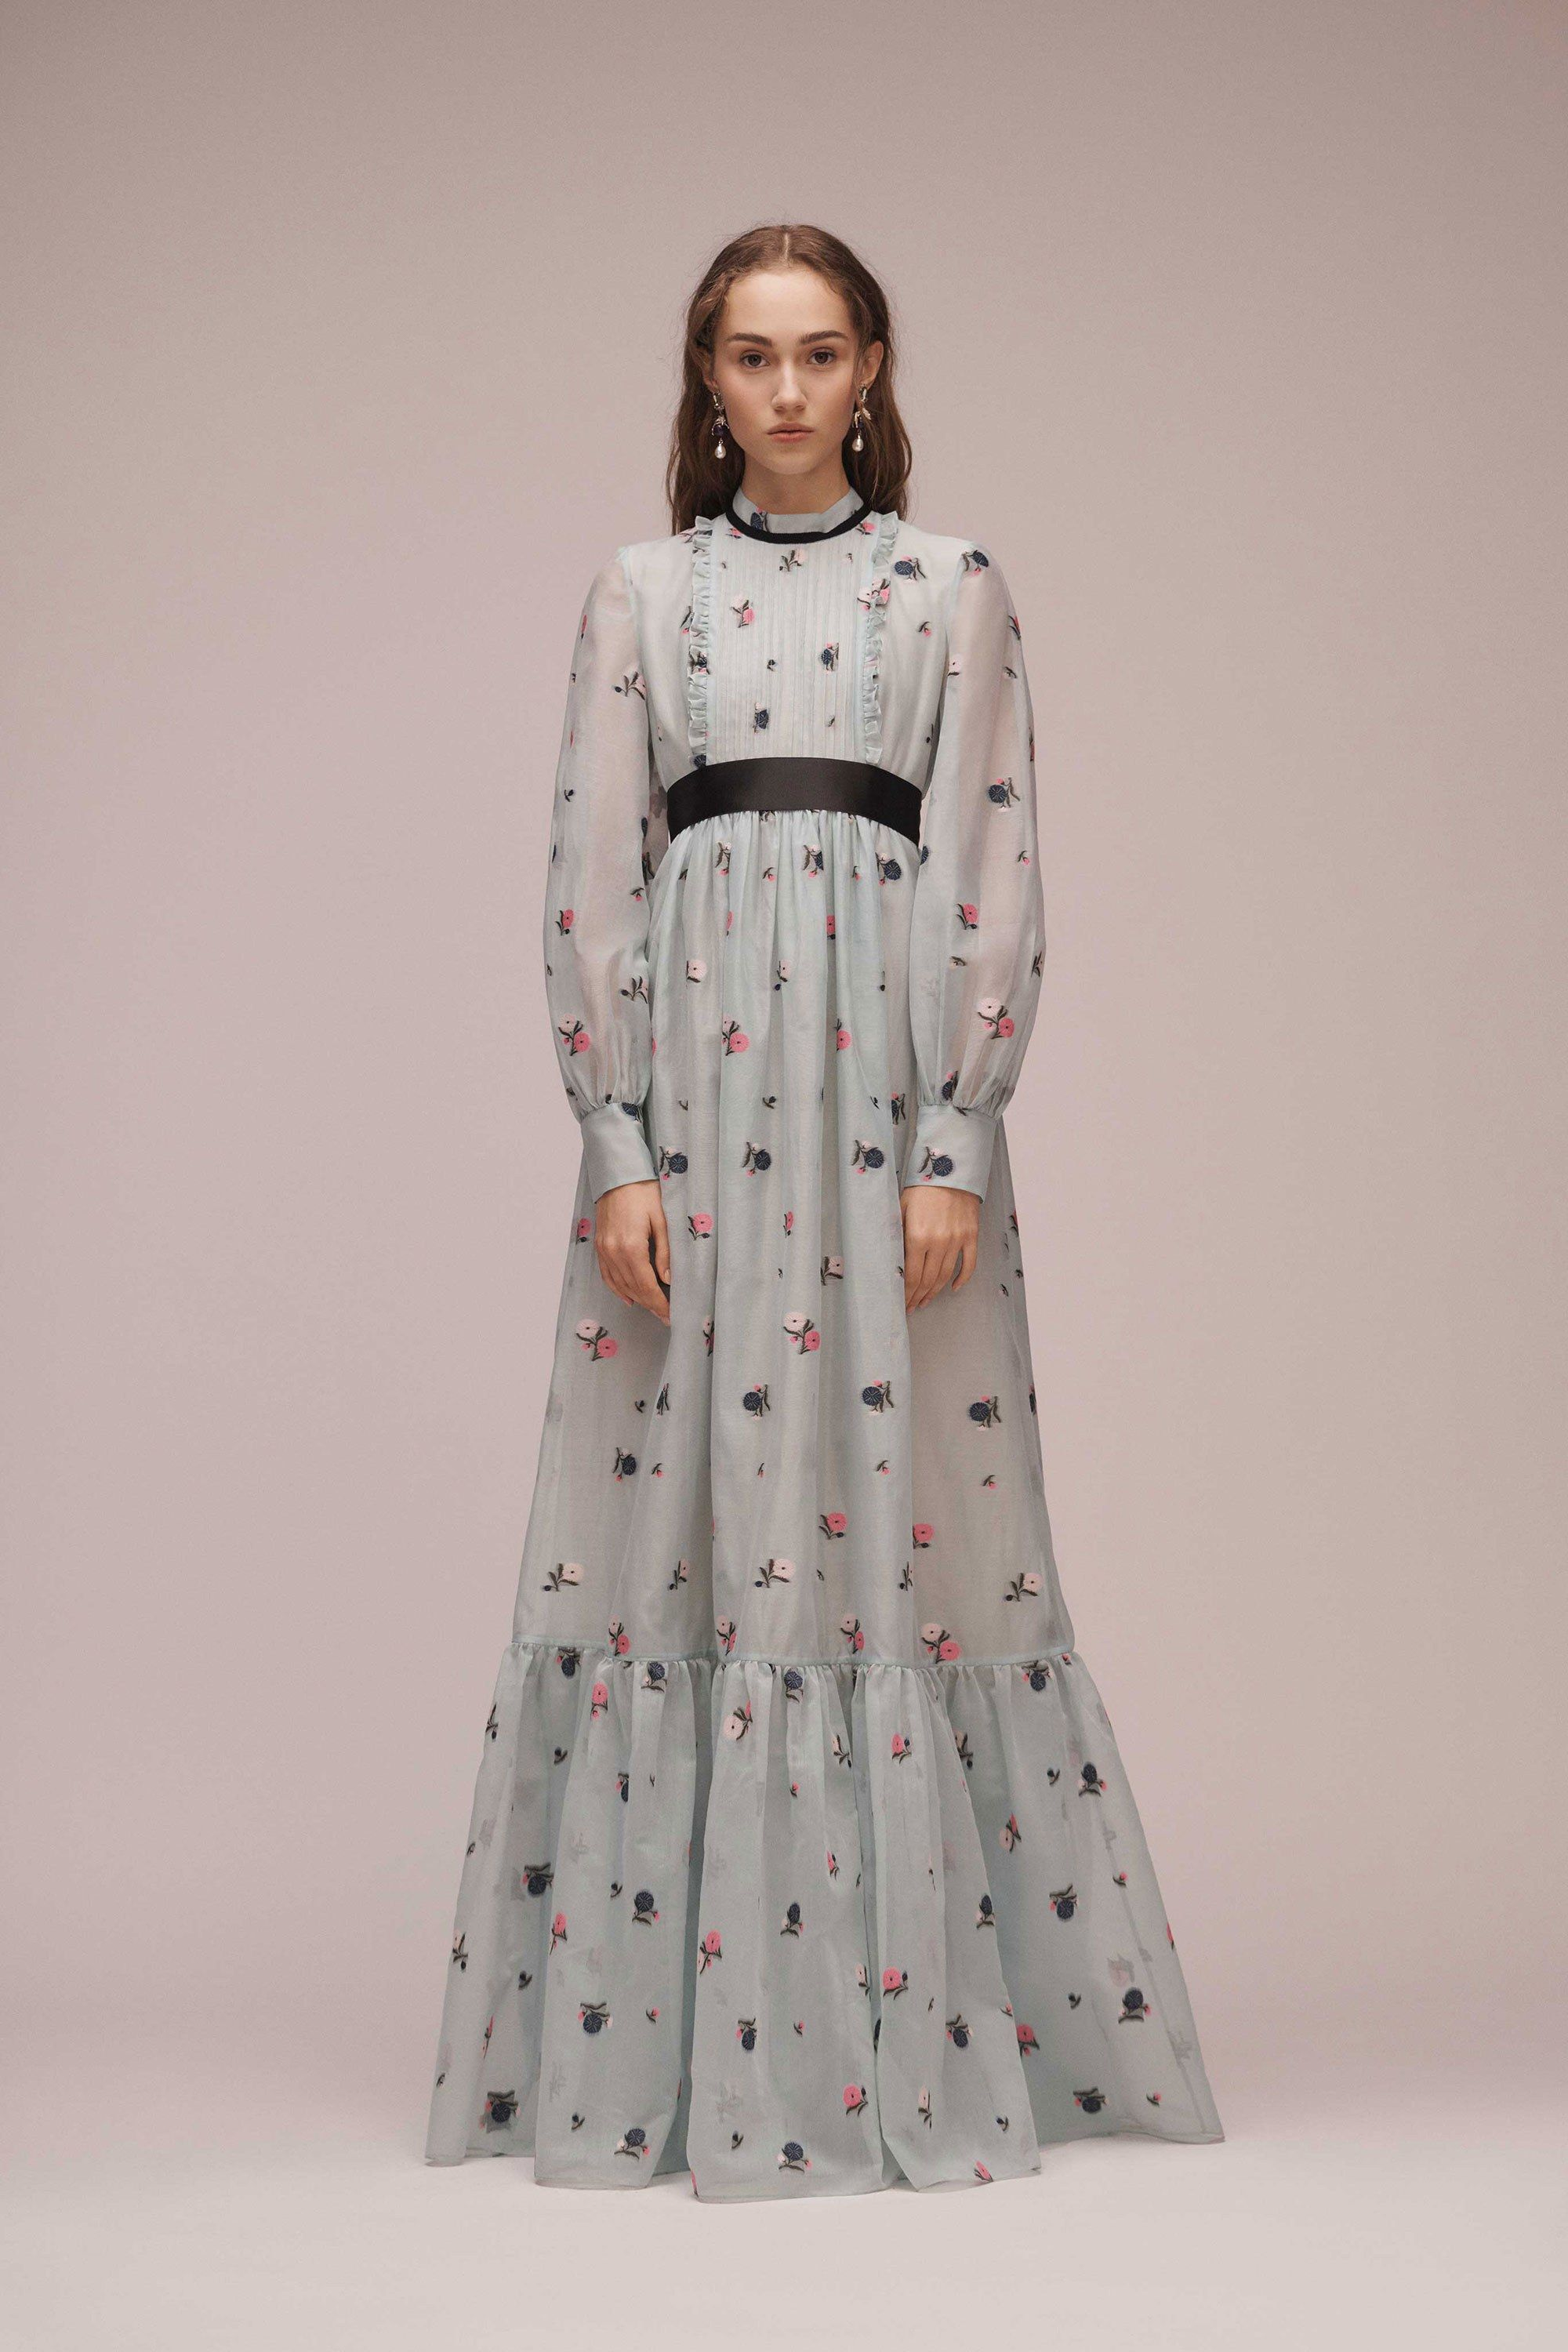 Erdem PreFall  Fashion Show  Erdem Collection and Model photos